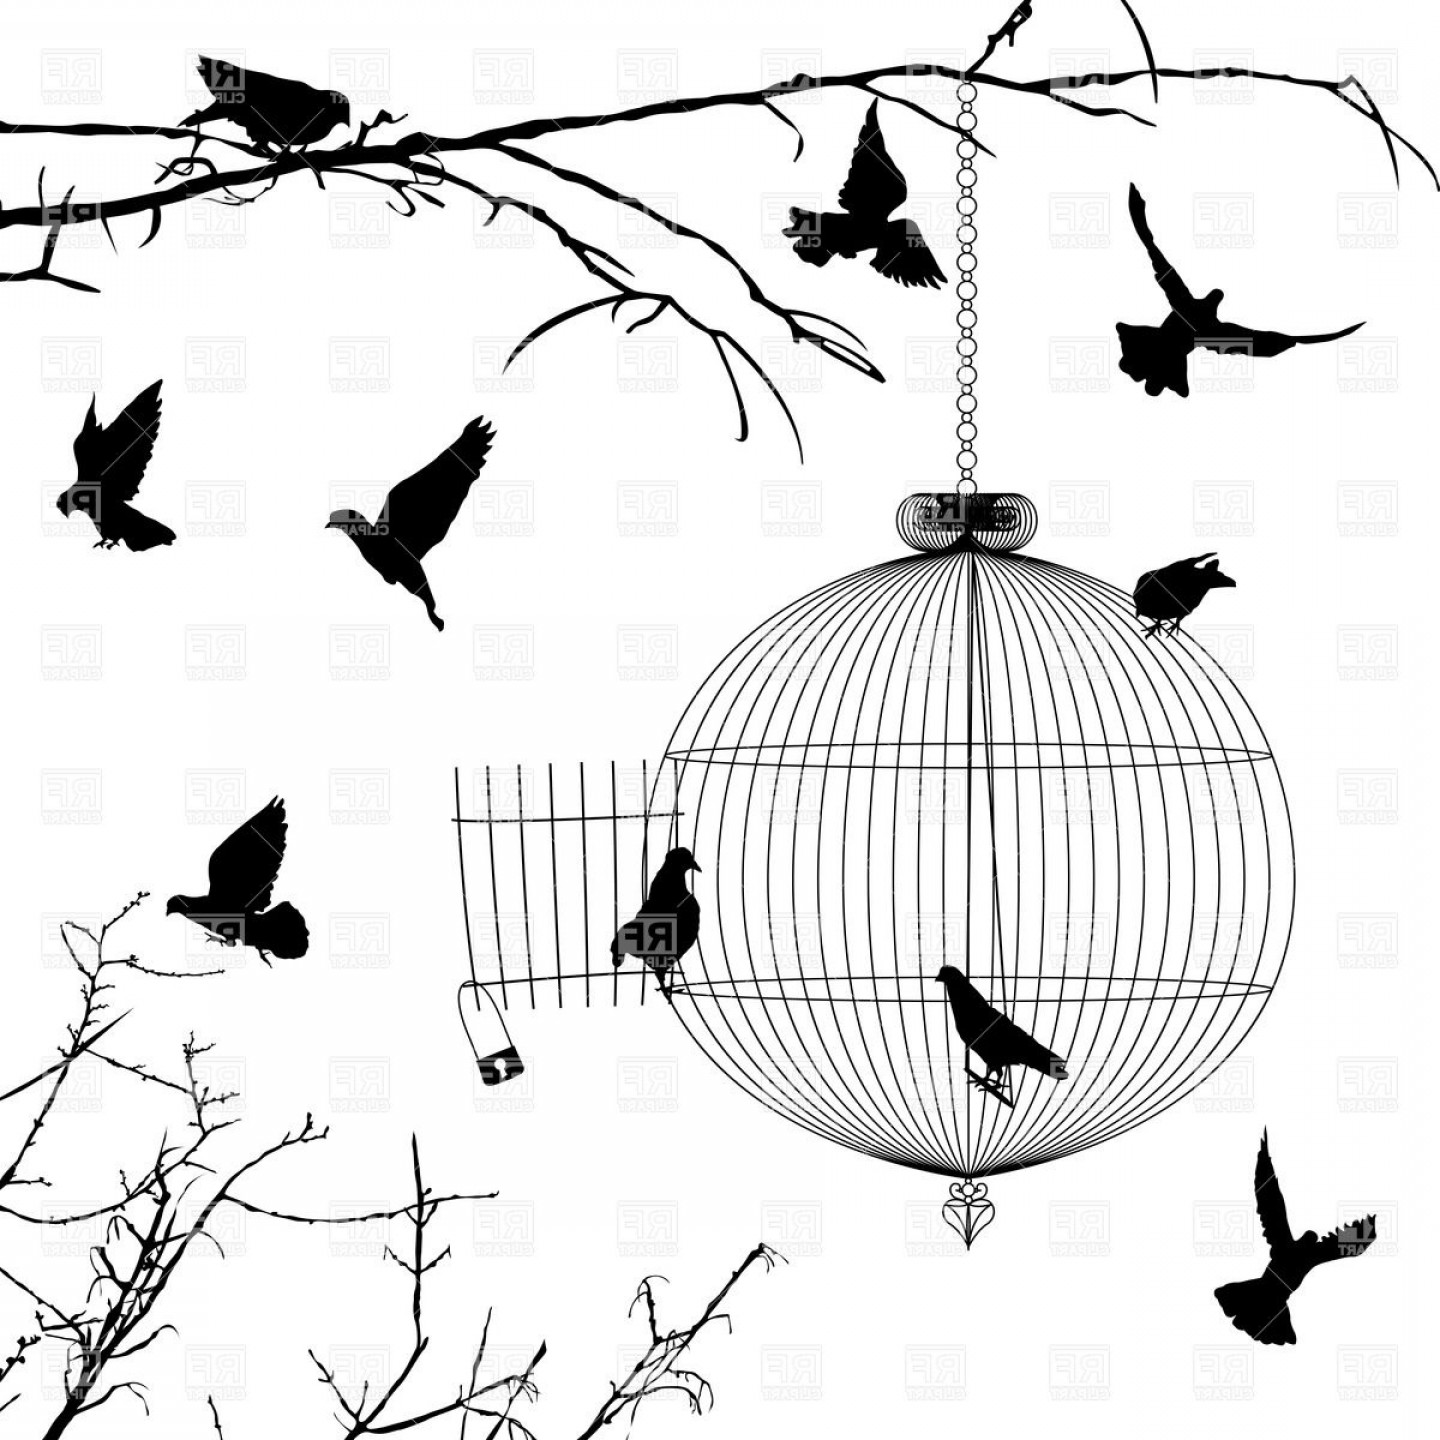 Black And White Bird Free Vector Graphics: Old Round Birdcage And Silhouettes Of Birds On Branches Vector Clipart